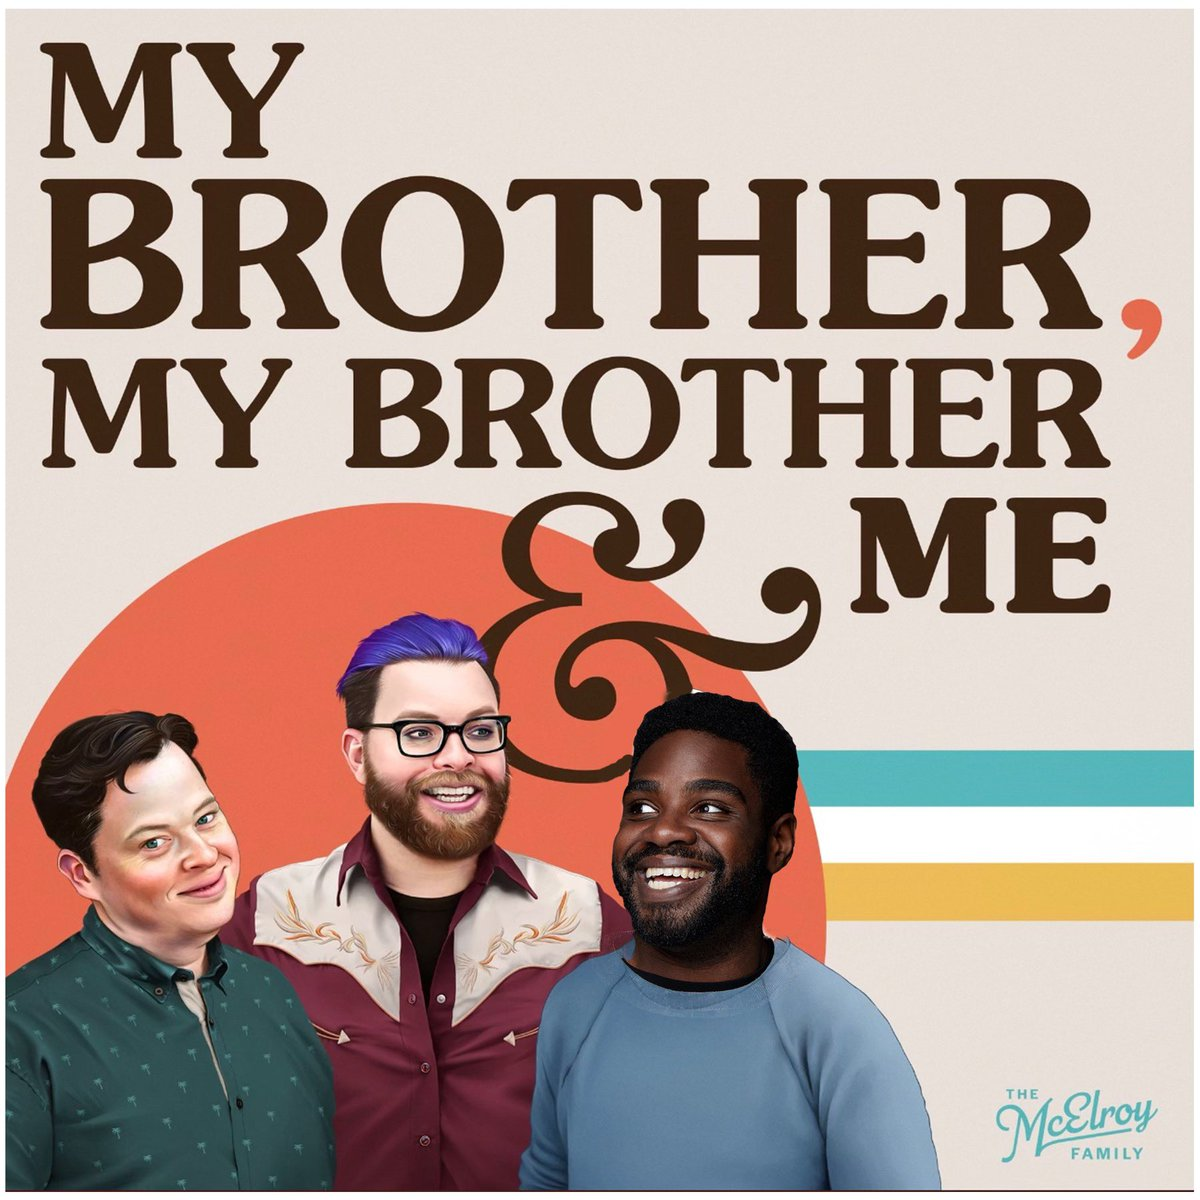 RT @RonFunches: I'm an official McElroy brother on #MBMBAM today! Go check it out!   https://t.co/ksTrLzABg6 https://t.co/cSTQO8qRya